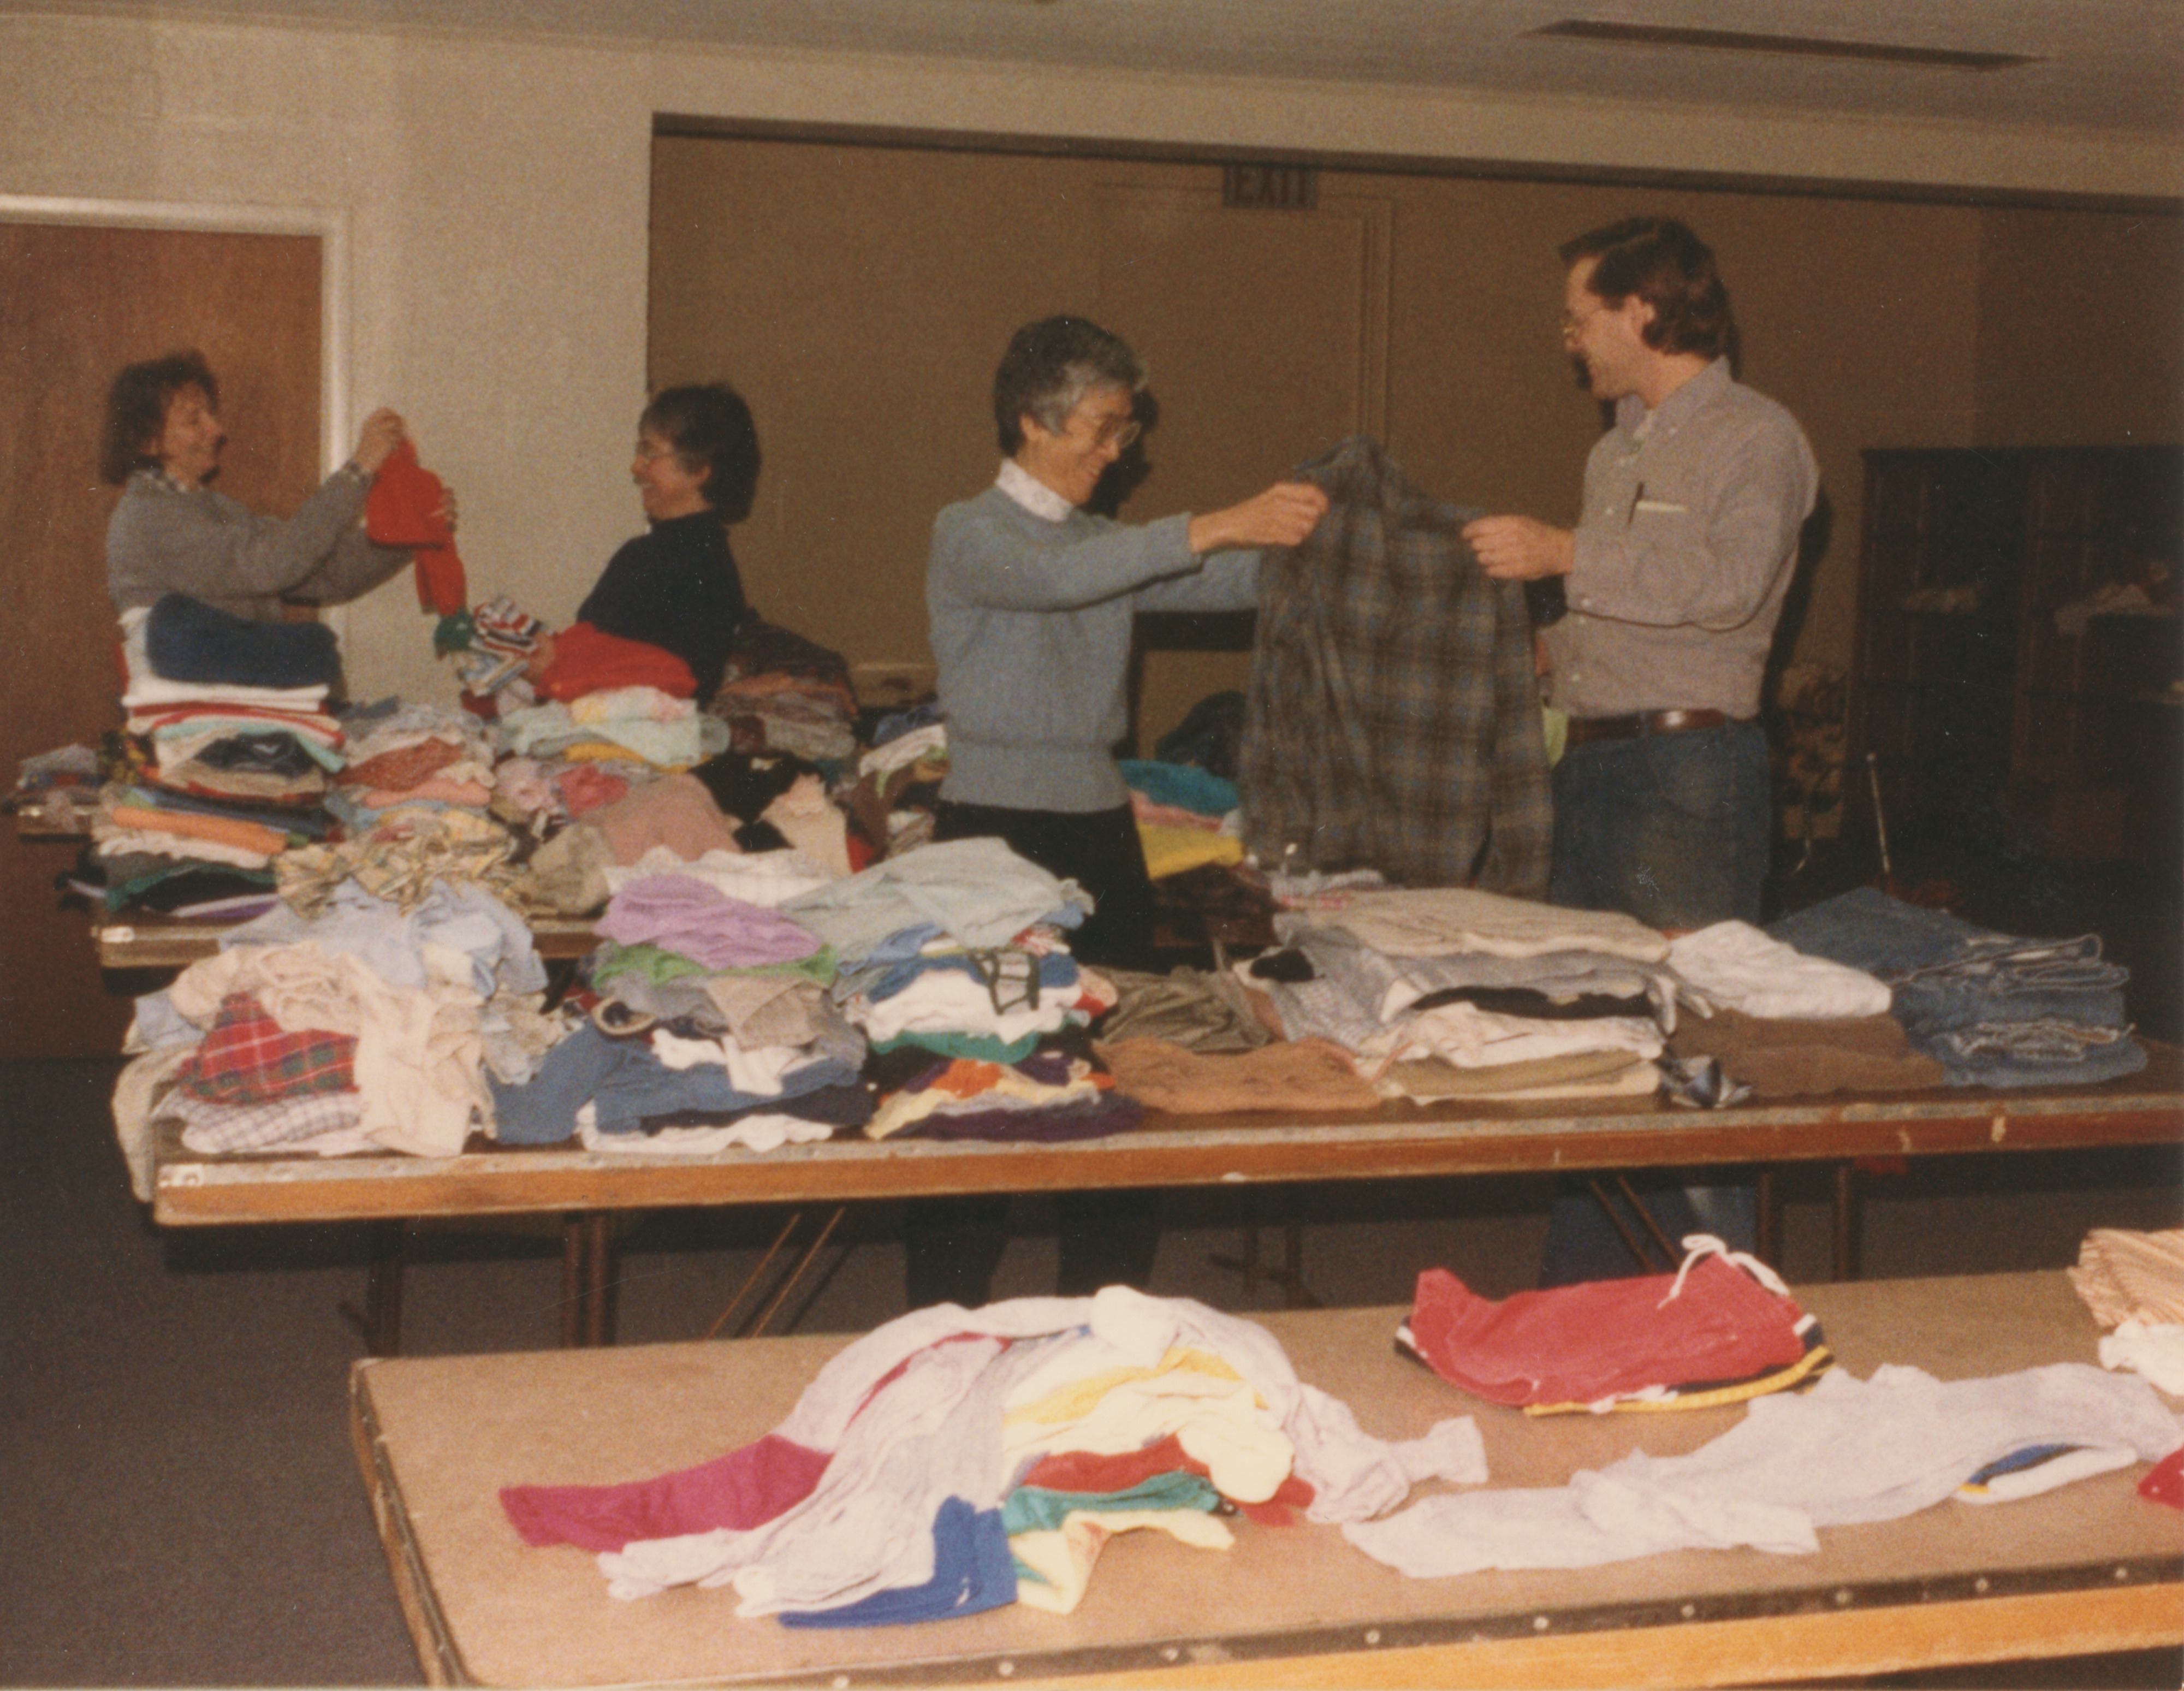 Interfaith Council for Peace and Justice: Clothing Drive beginning packing, Lord of Light Lutheran Church, 1987 image